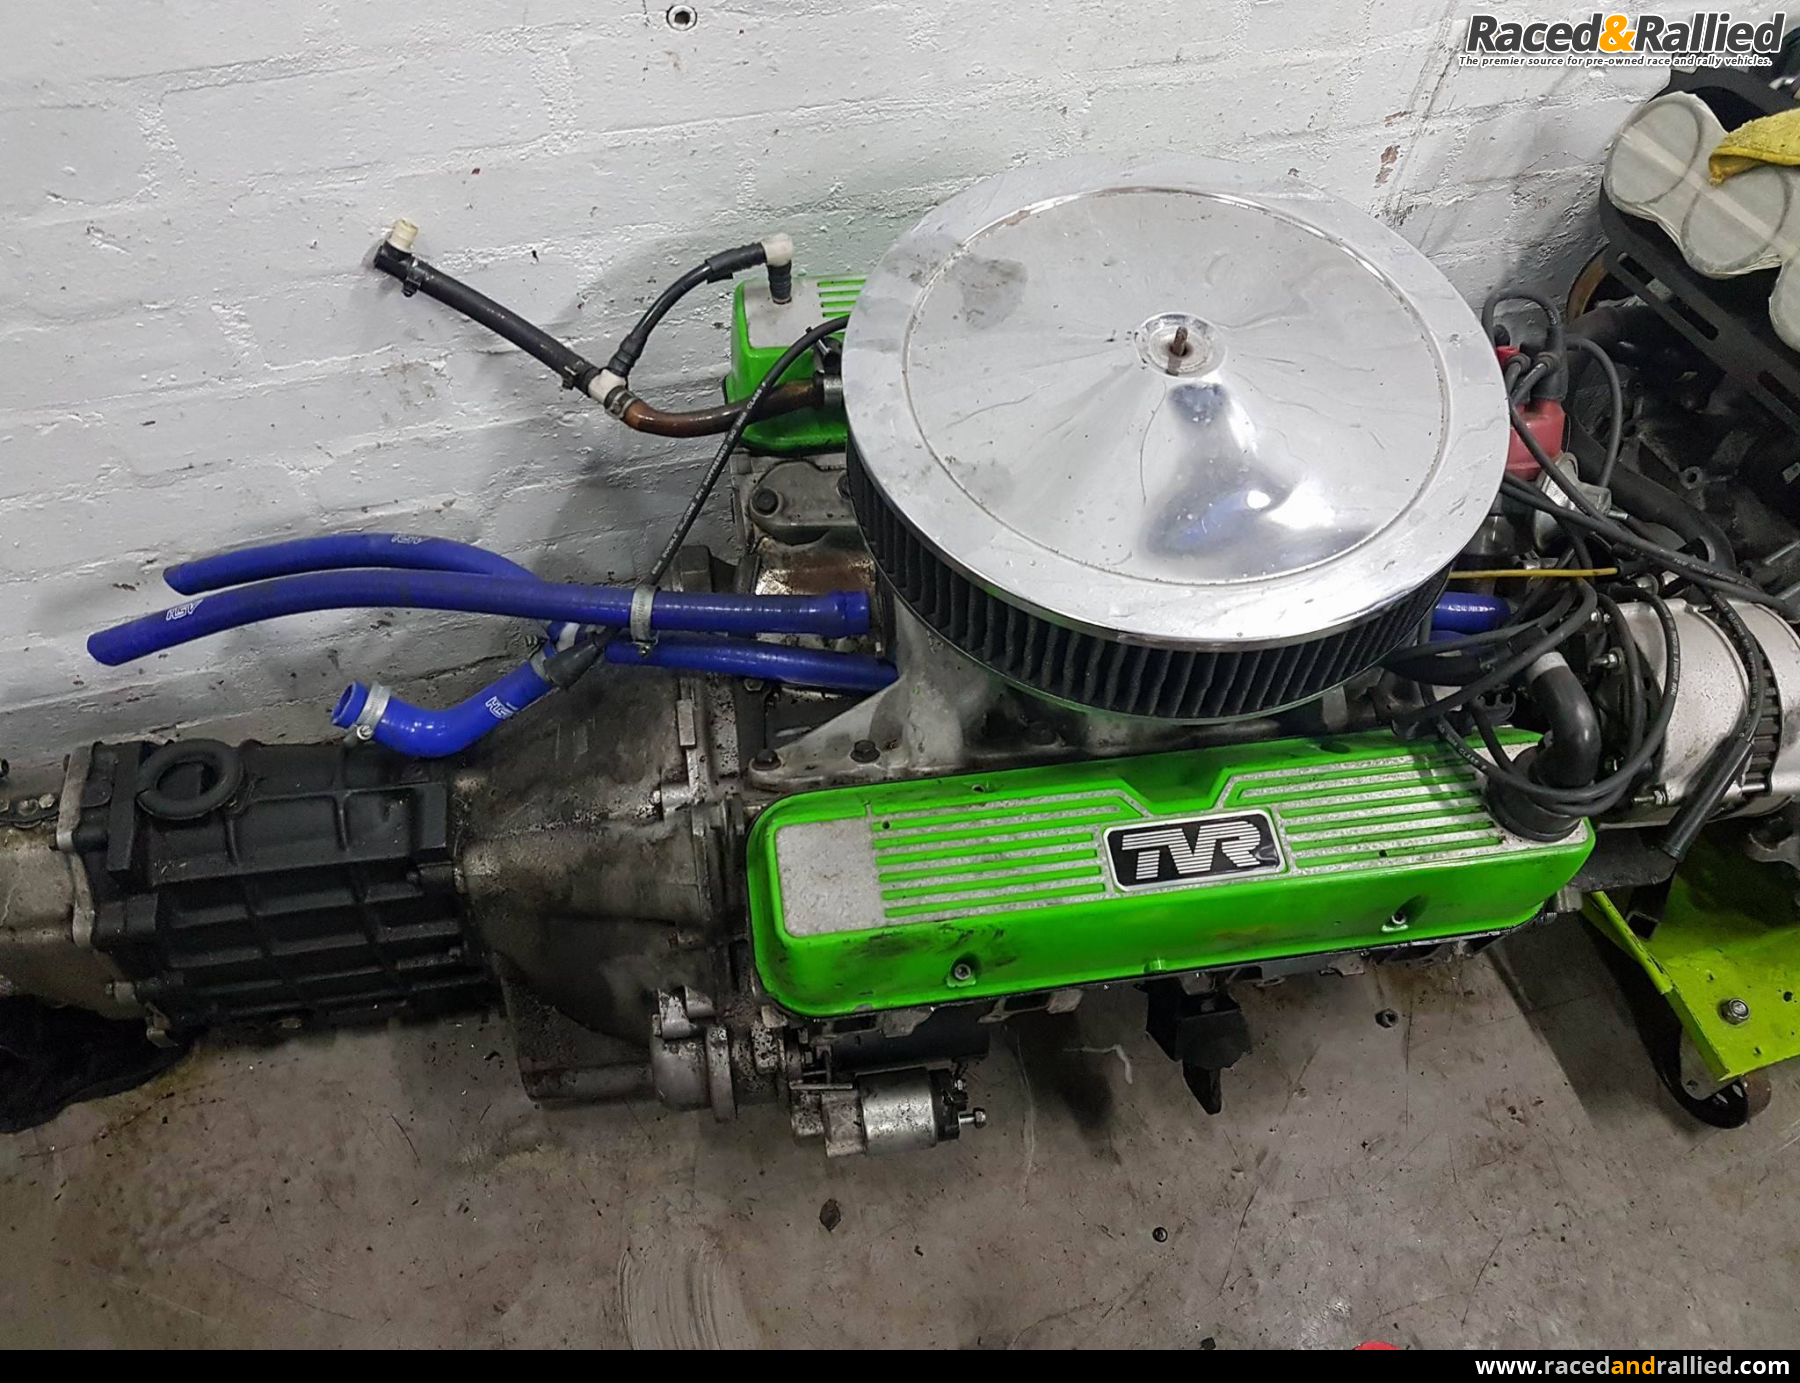 TVR Power V8 Rover 3.9 engine (complete) | kit car parts for sale at ...